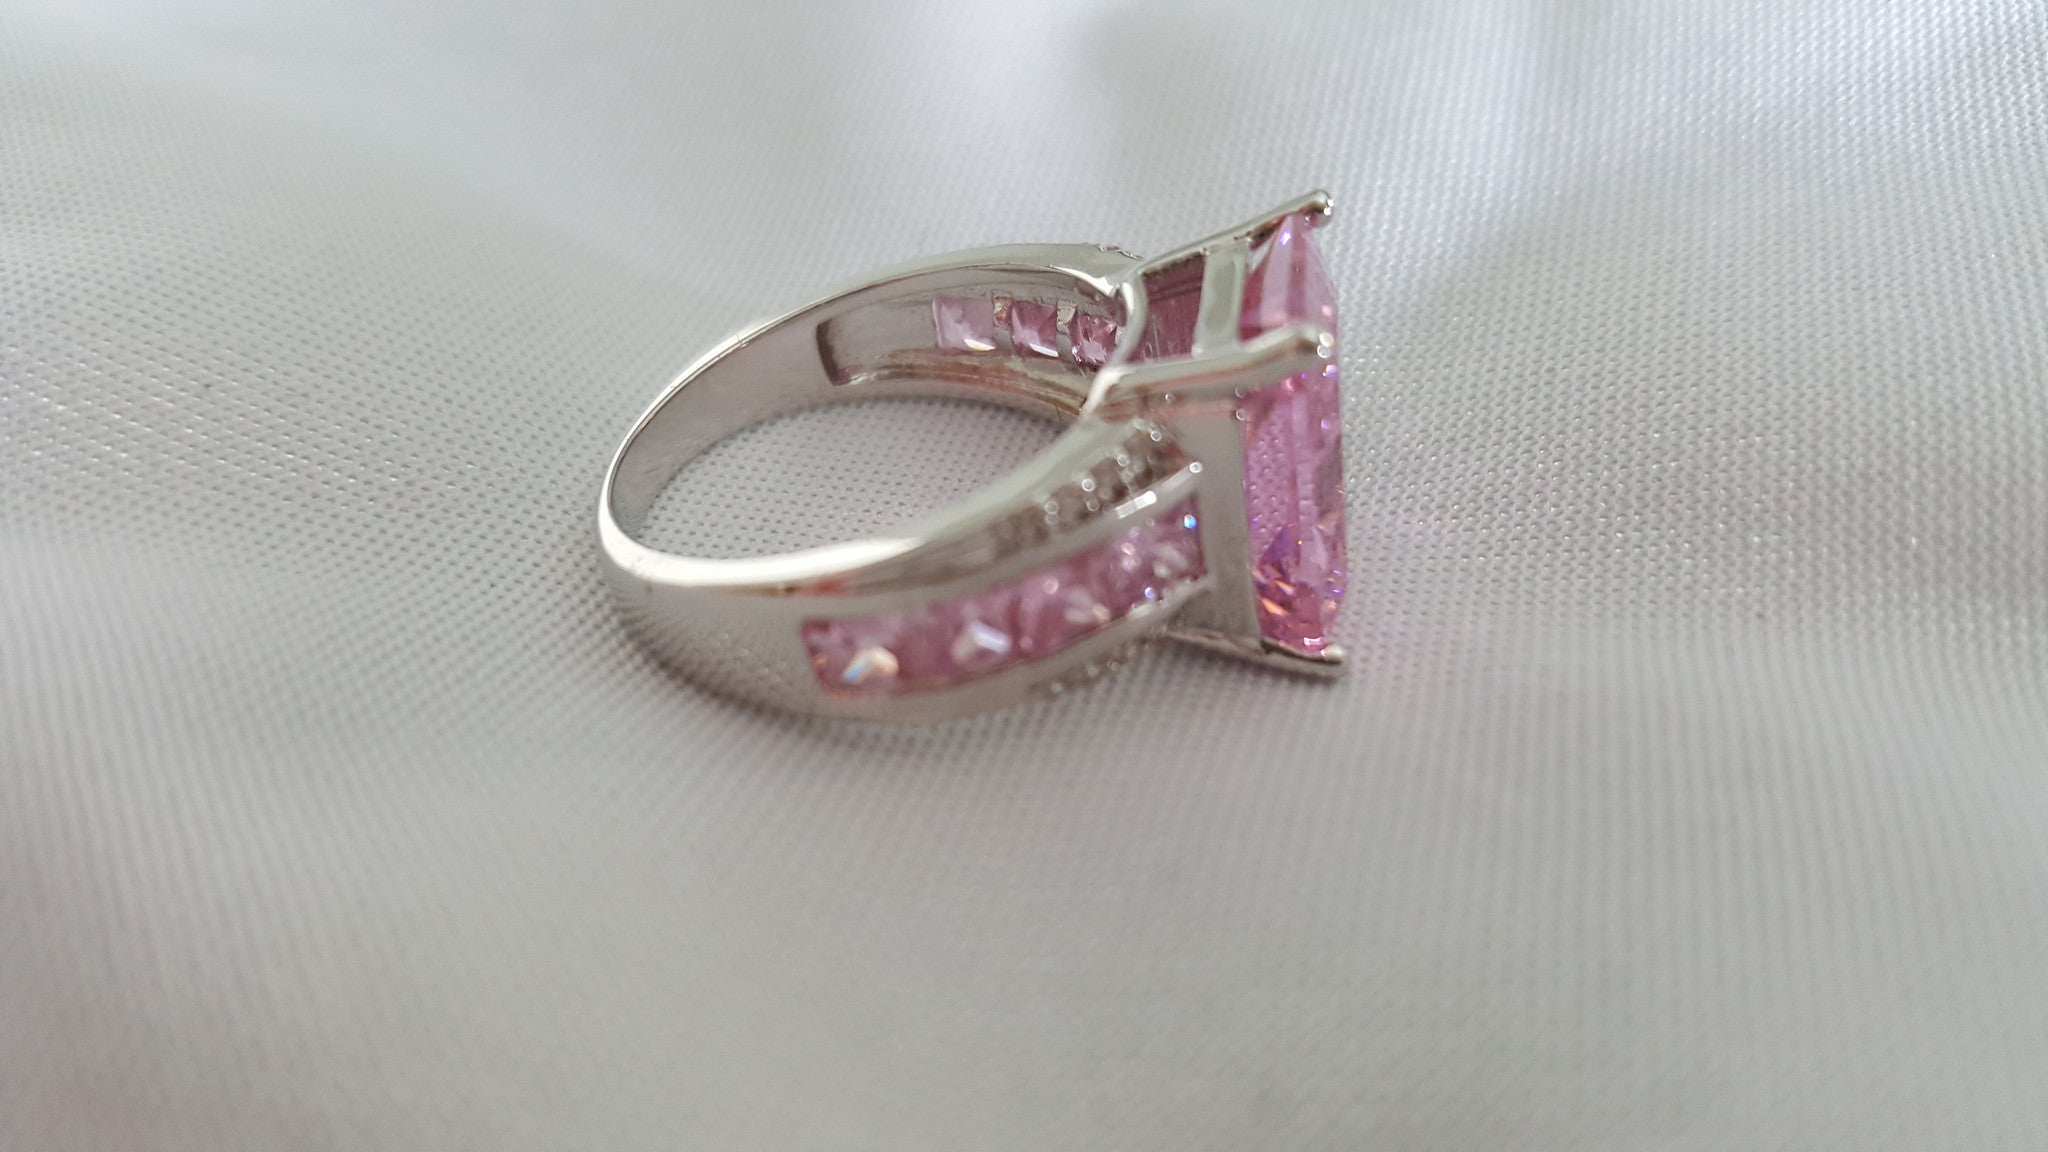 Rhodium Plated AAA Pink CZ  Beautiful Ring! -  New Fashion Finds By Carole